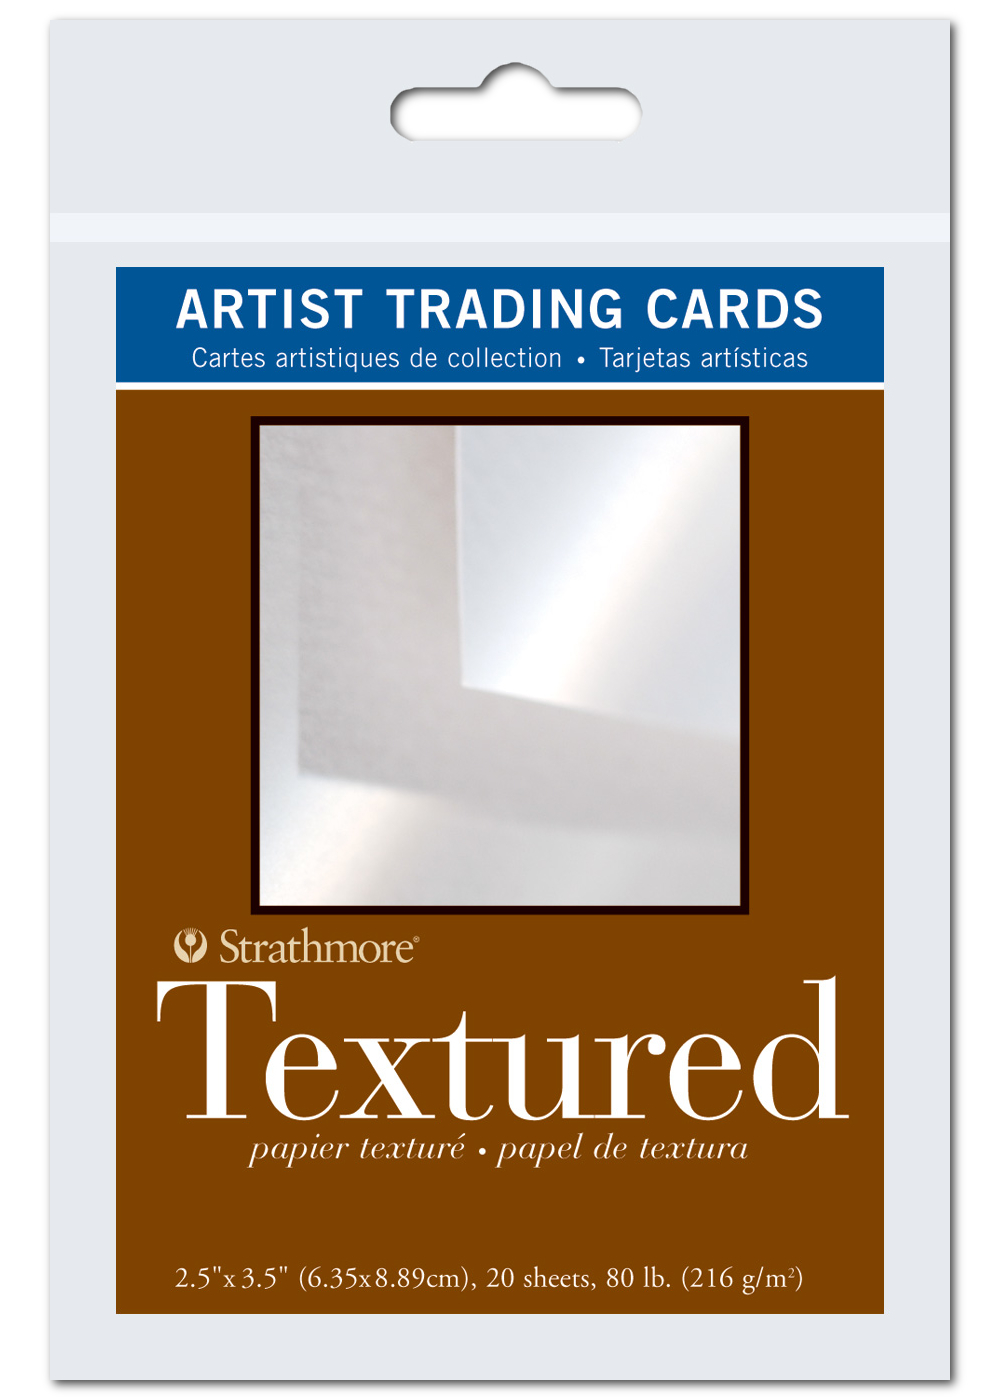 Strathmore Art Trading Cards Textured Paper